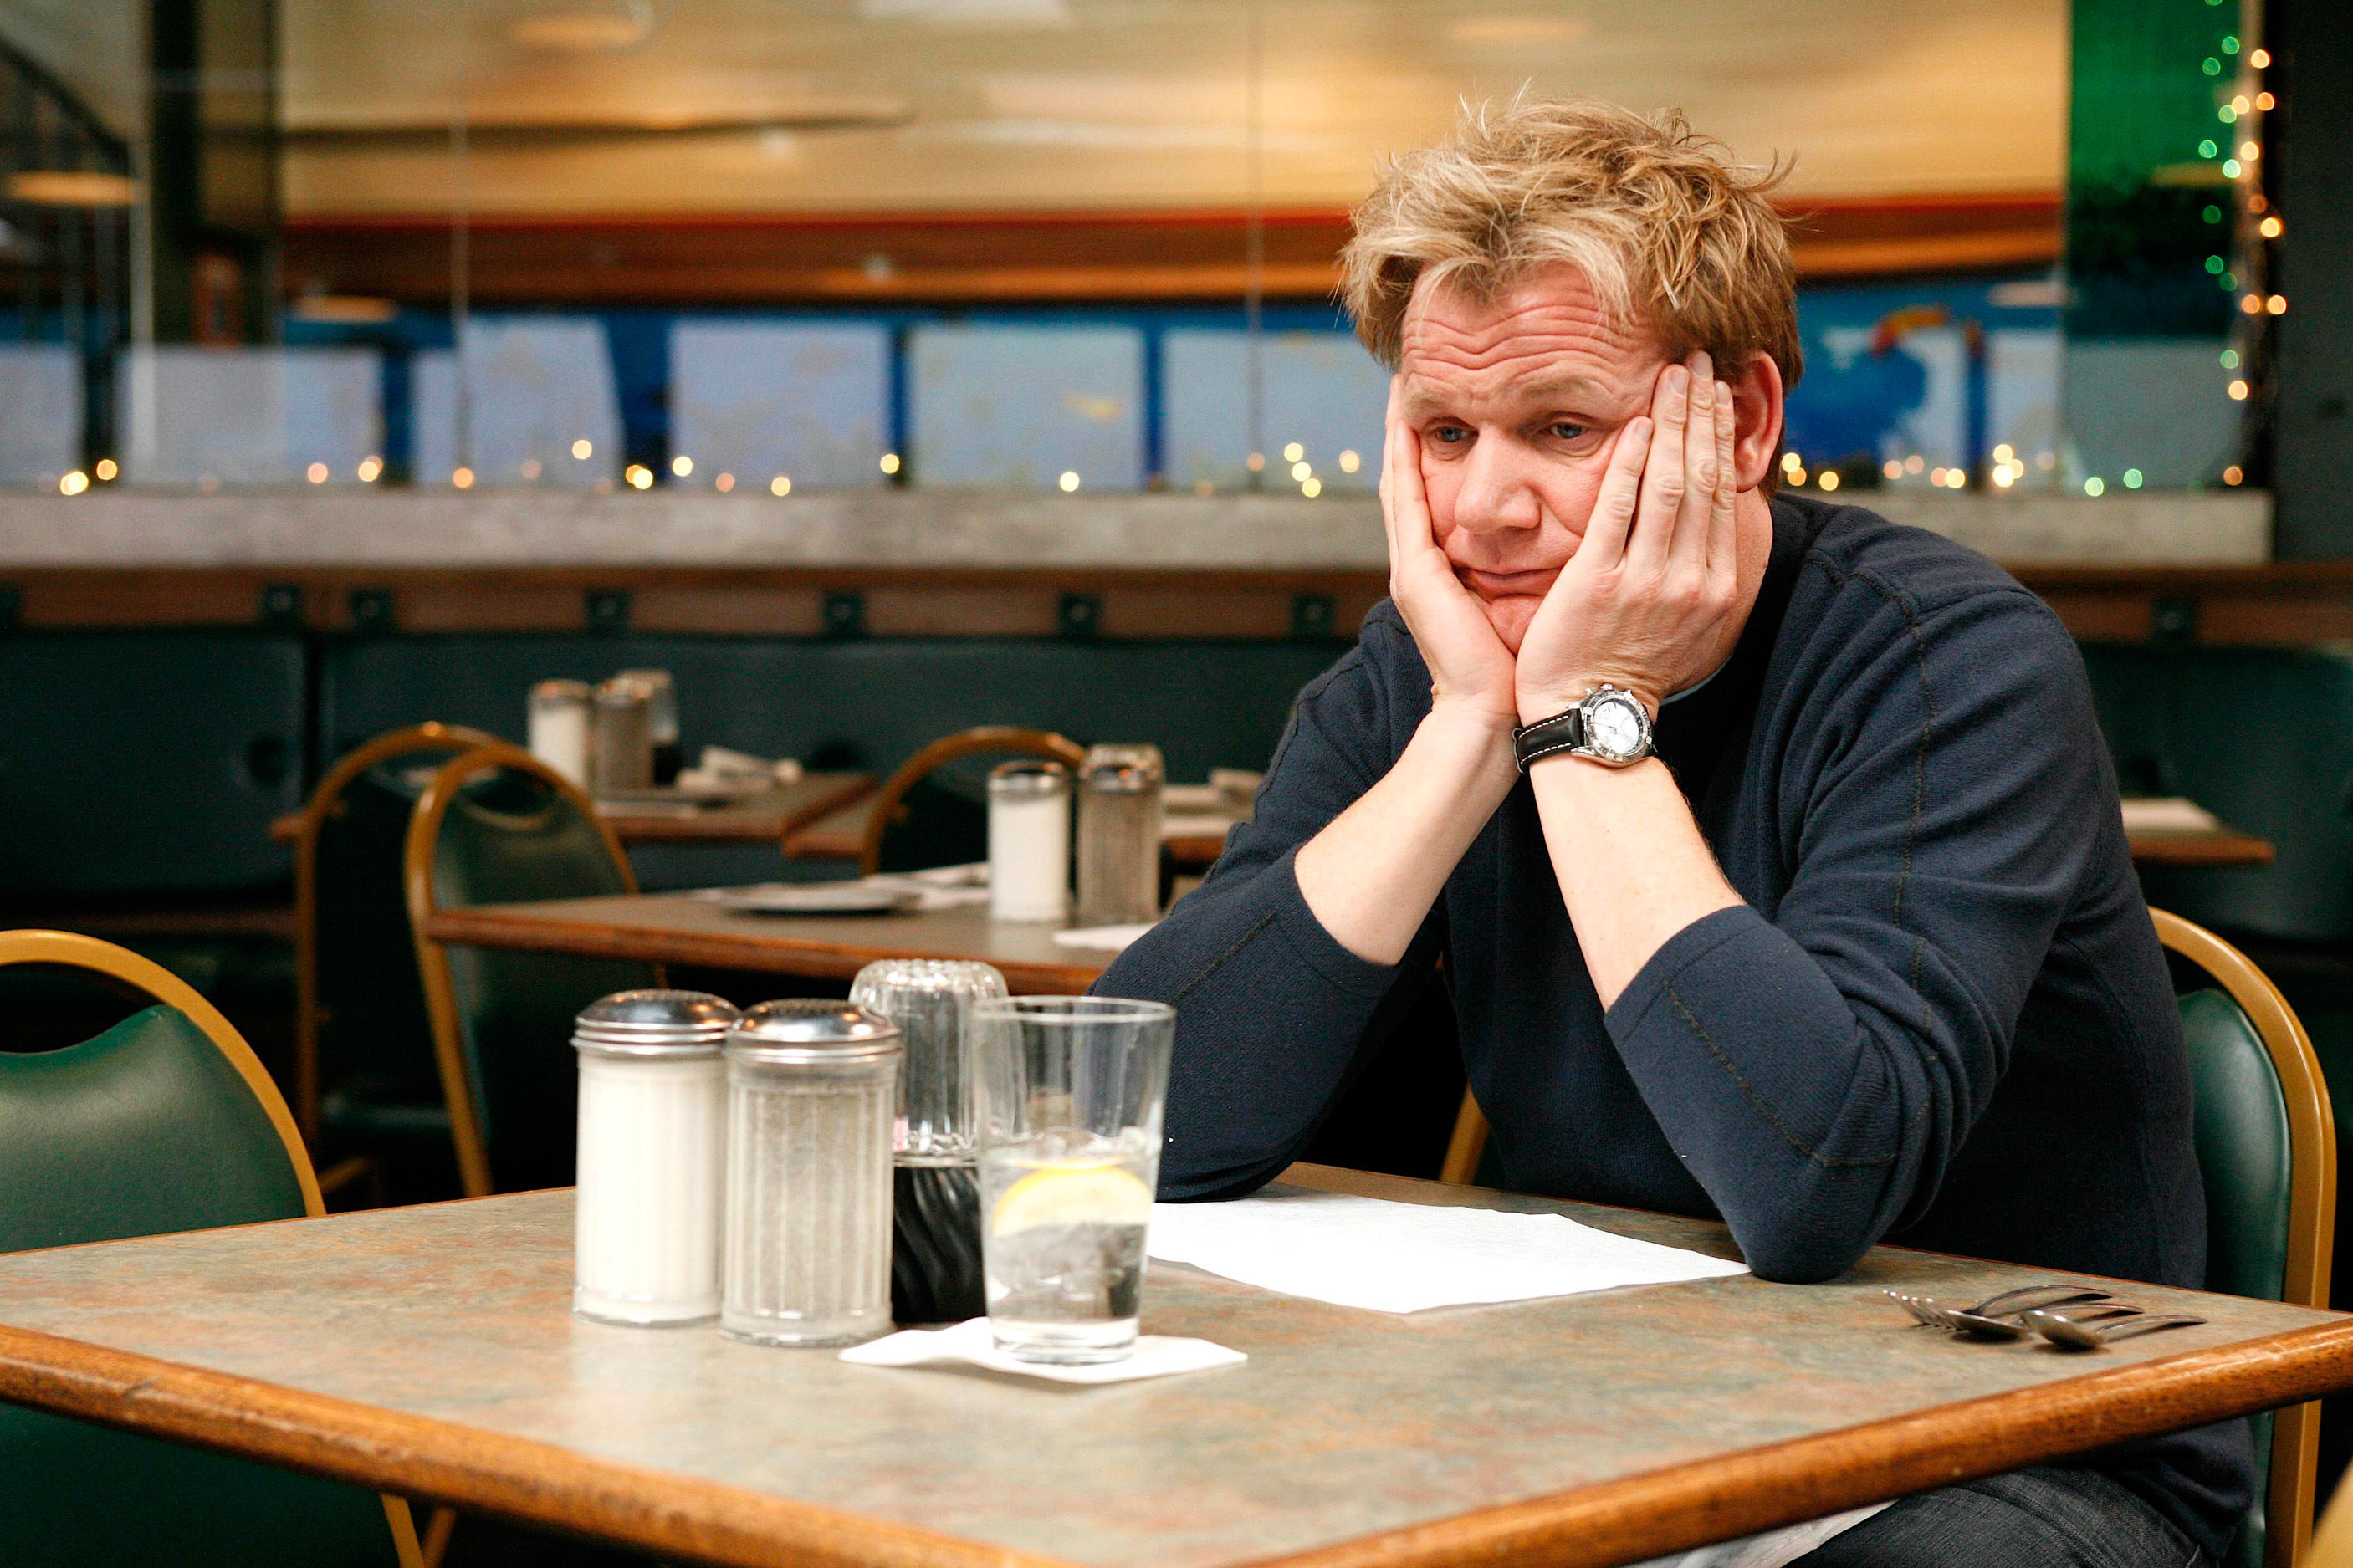 Gordon Ramsay looking sad at a table with his hands holding his face